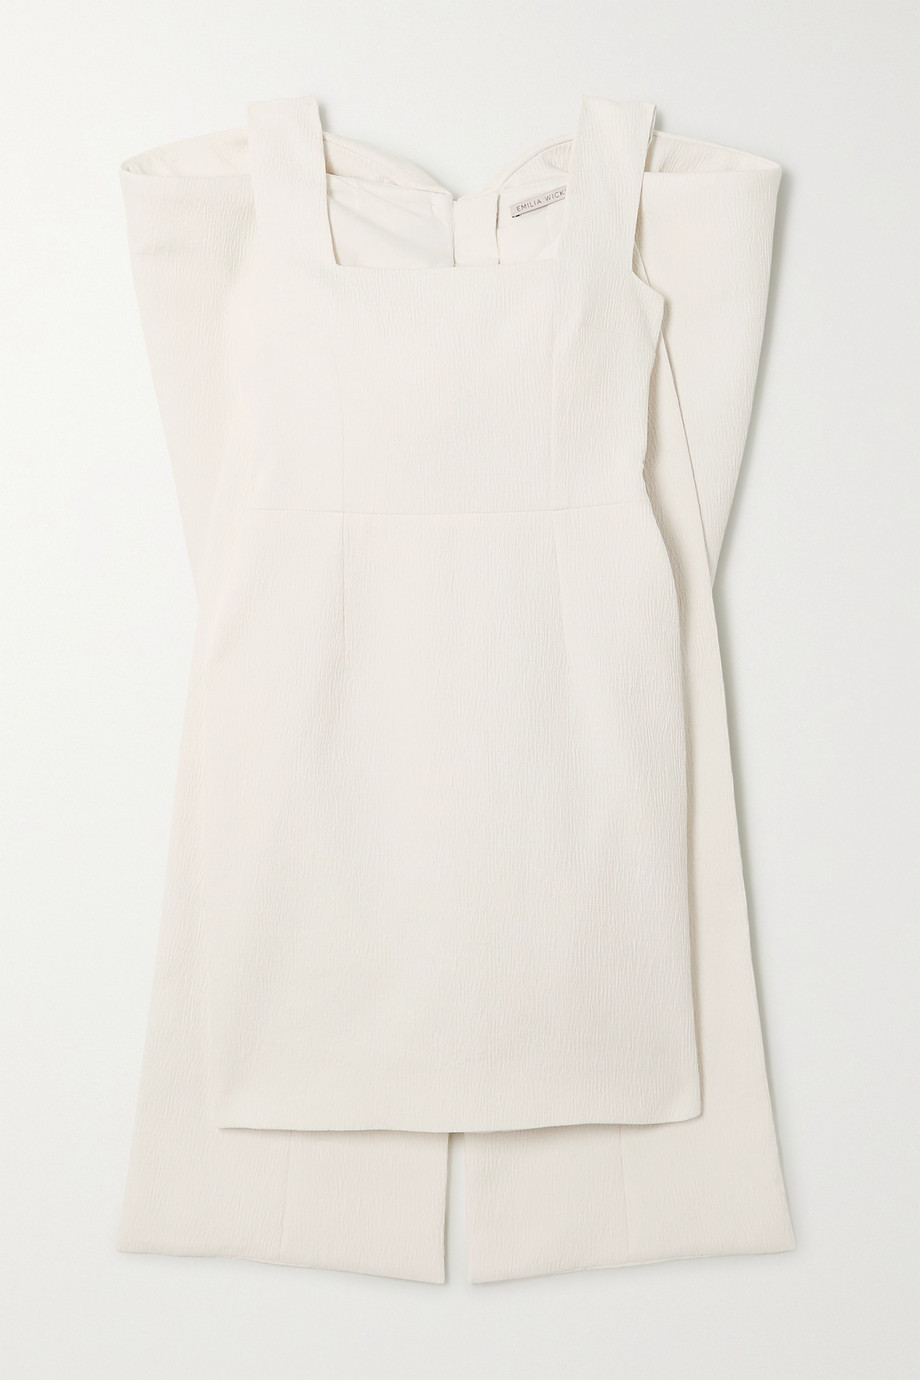 Emilia Wickstead Drusilla bow-detailed cloqué mini dress